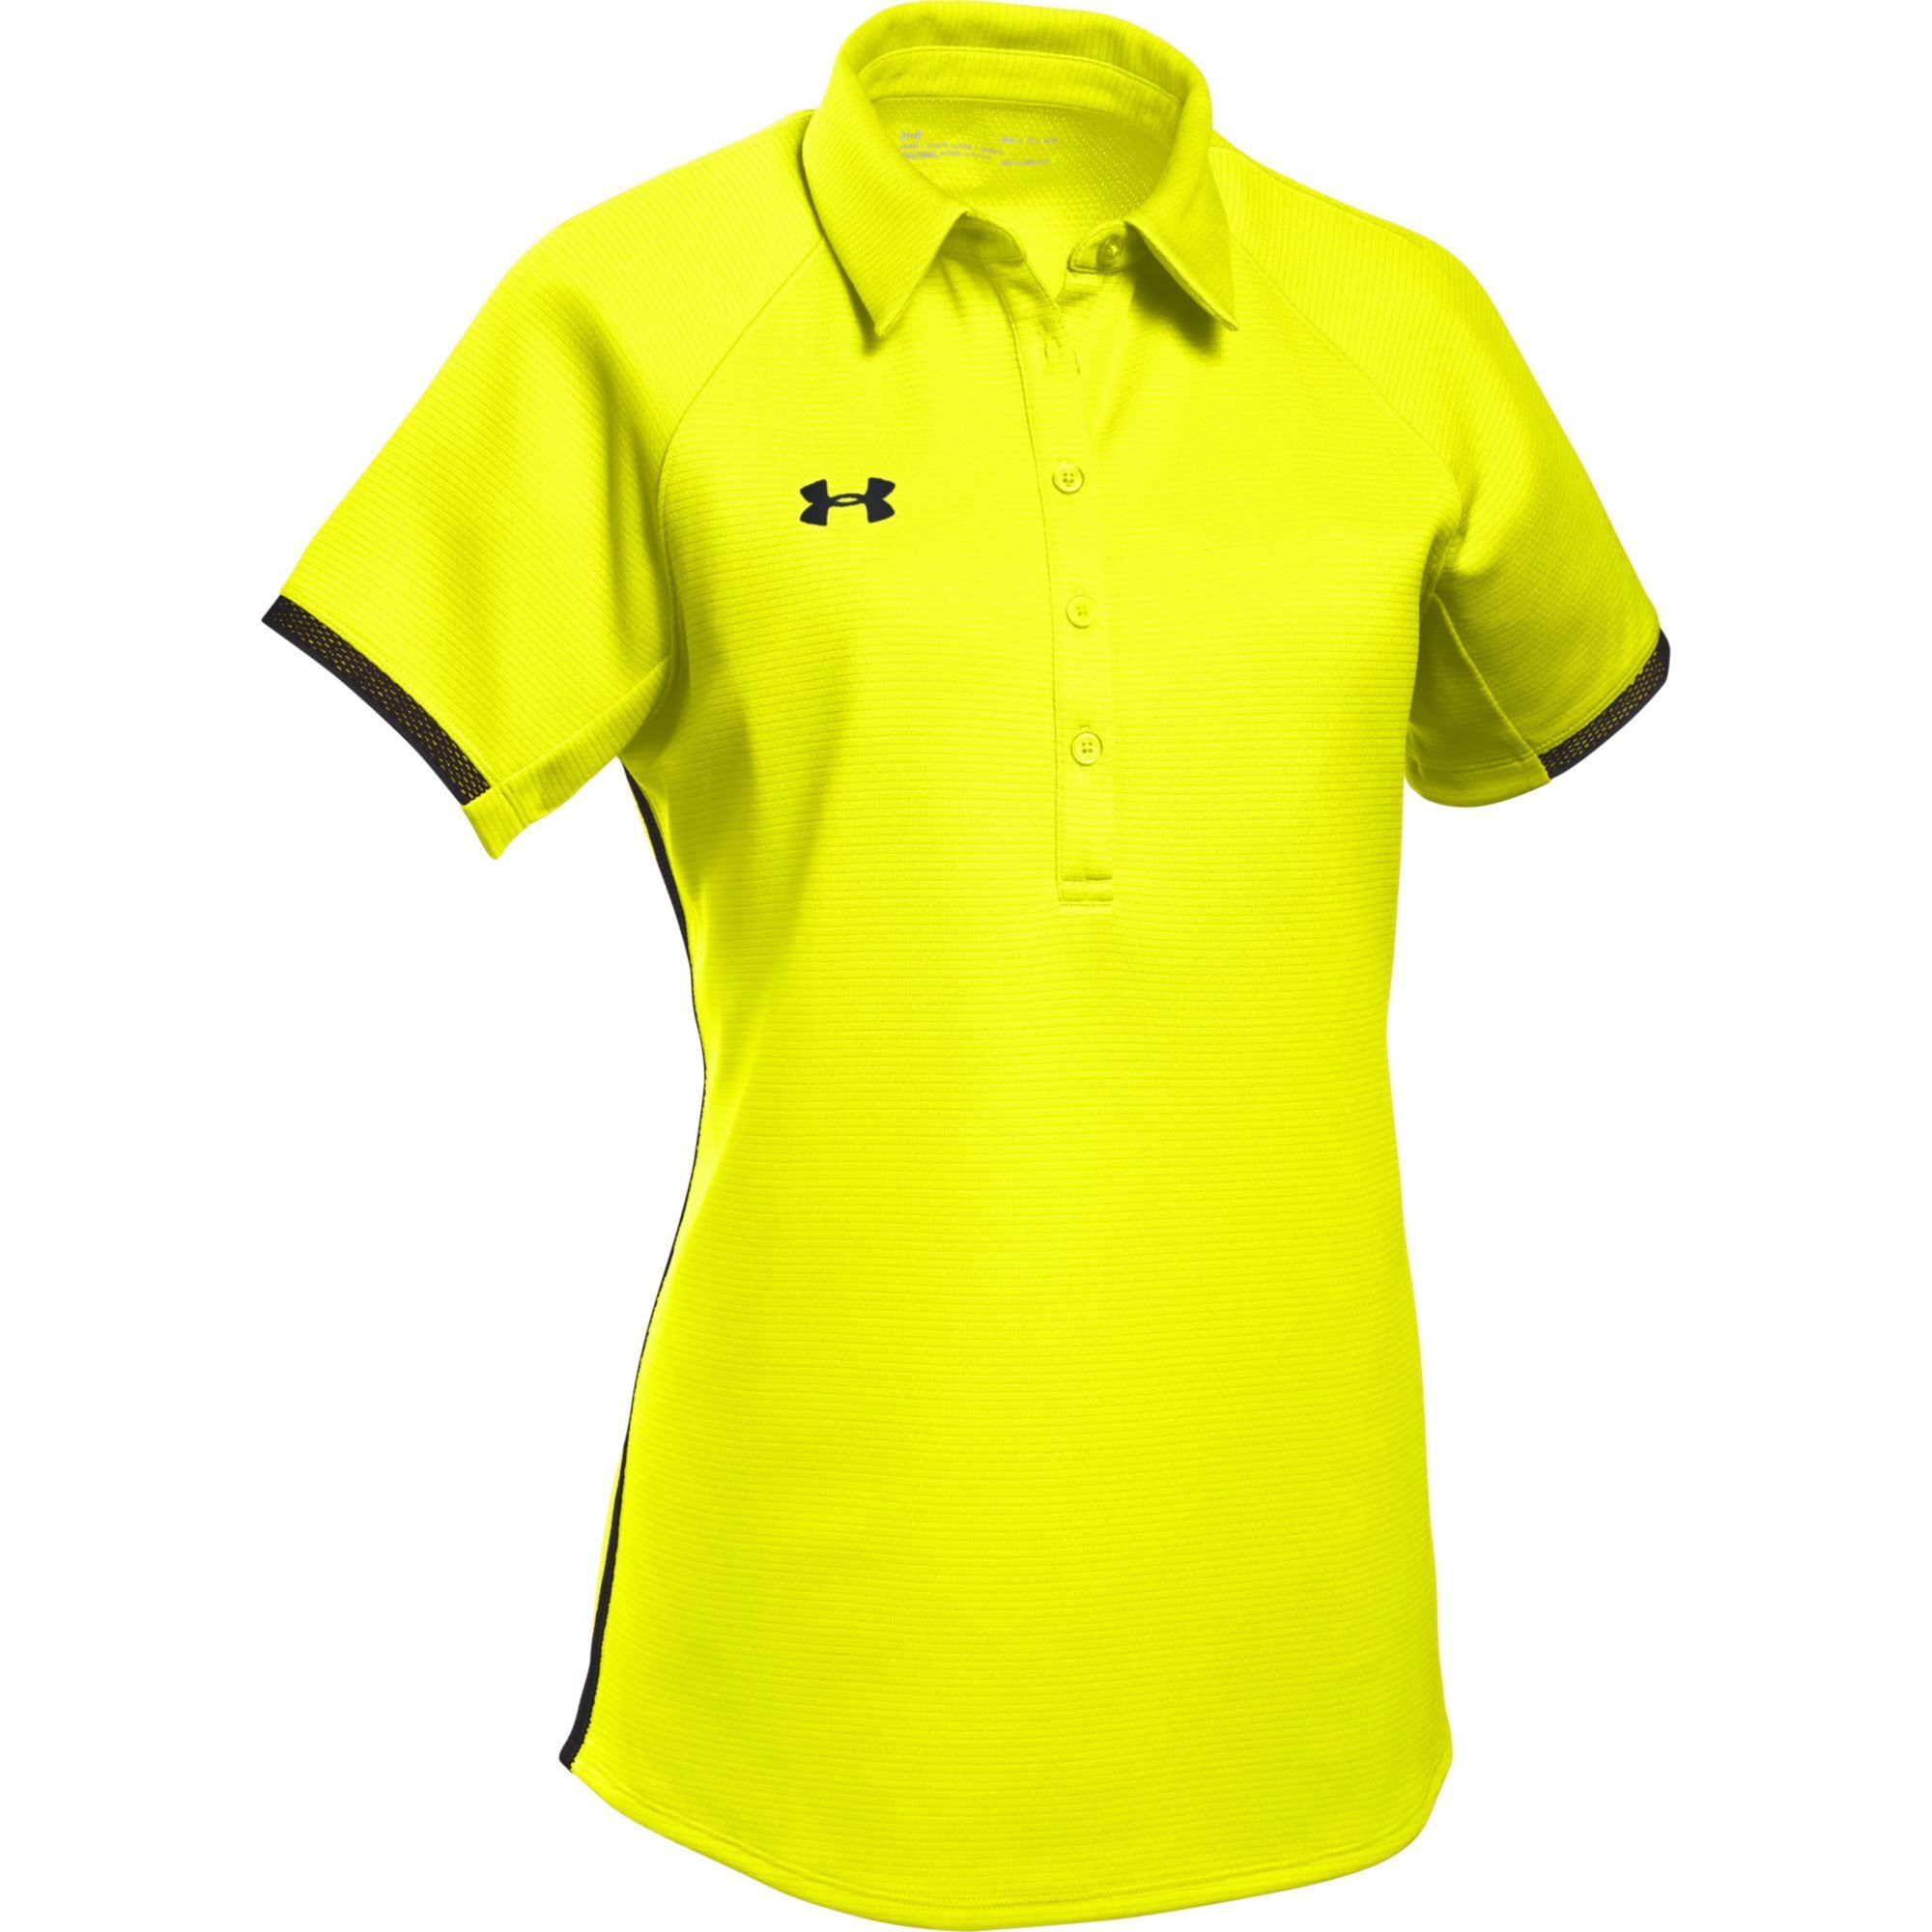 Under Armour Women's UA Rival Polo (X-Small, High-Vis Yellow)